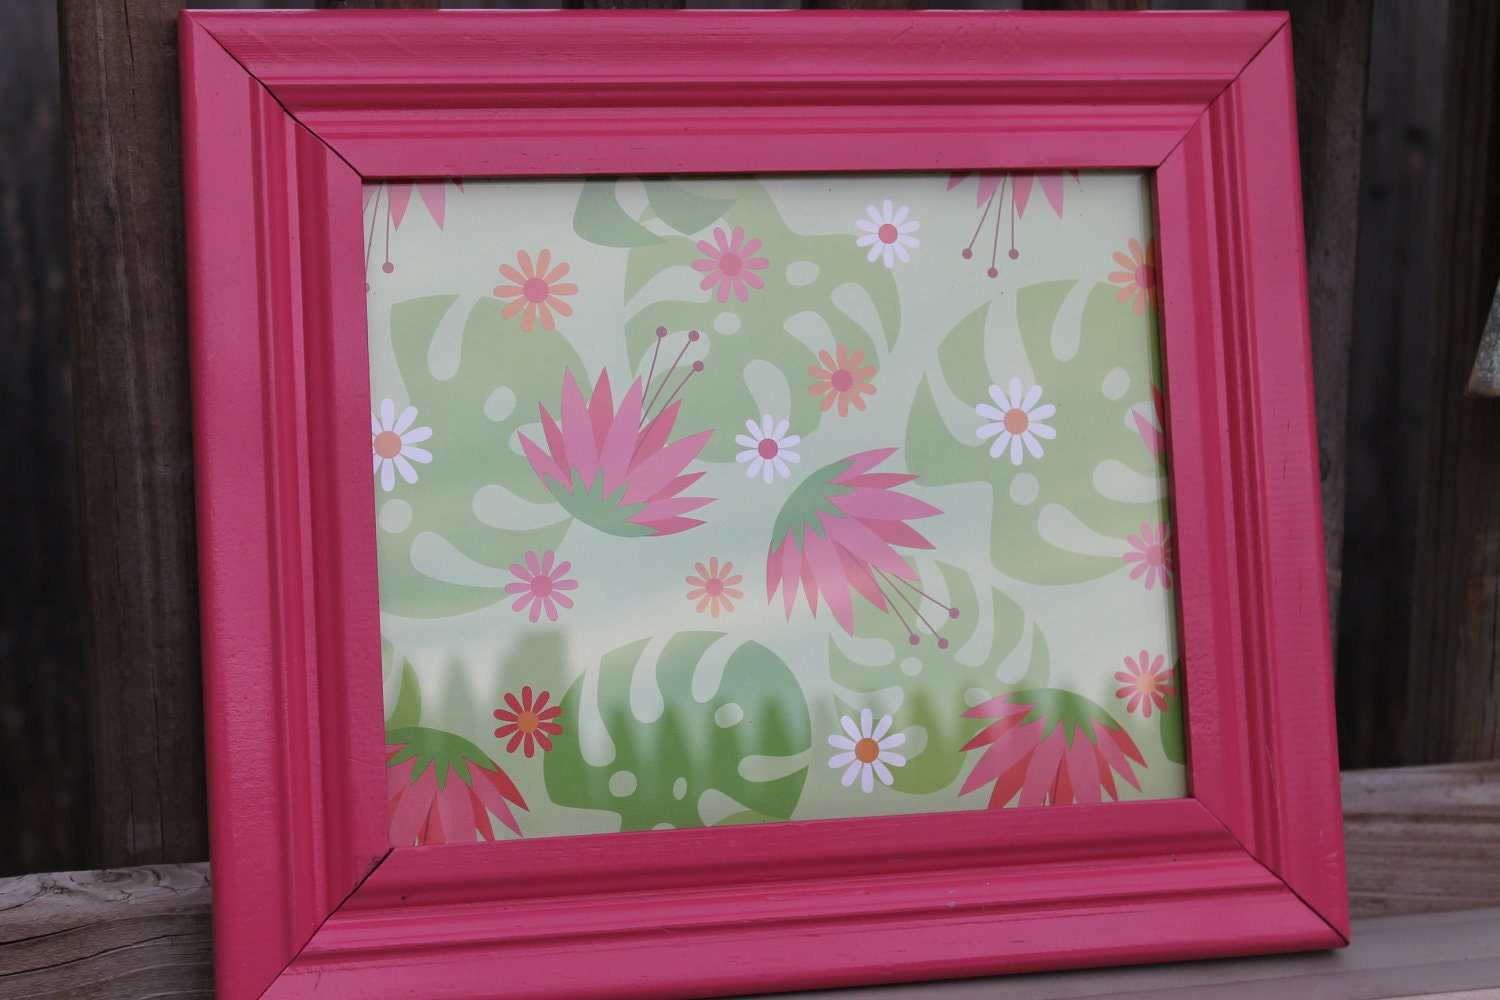 Hot Pink Picture Frame With Art-Upcycled valentines day shabby chic, modern, retro